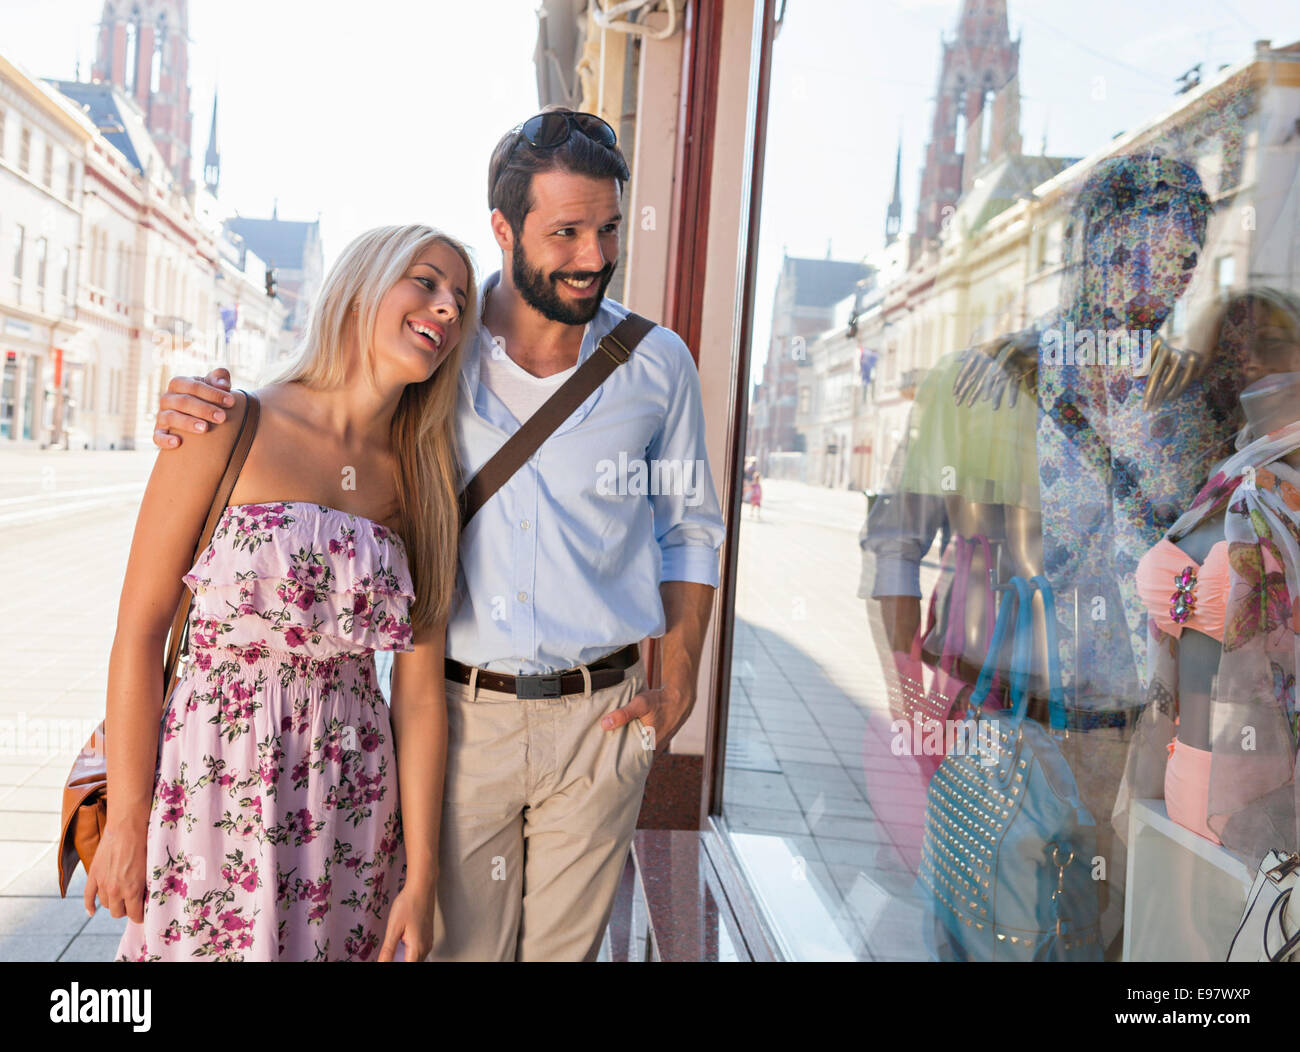 Young couple looking in fashion shop window - Stock Image